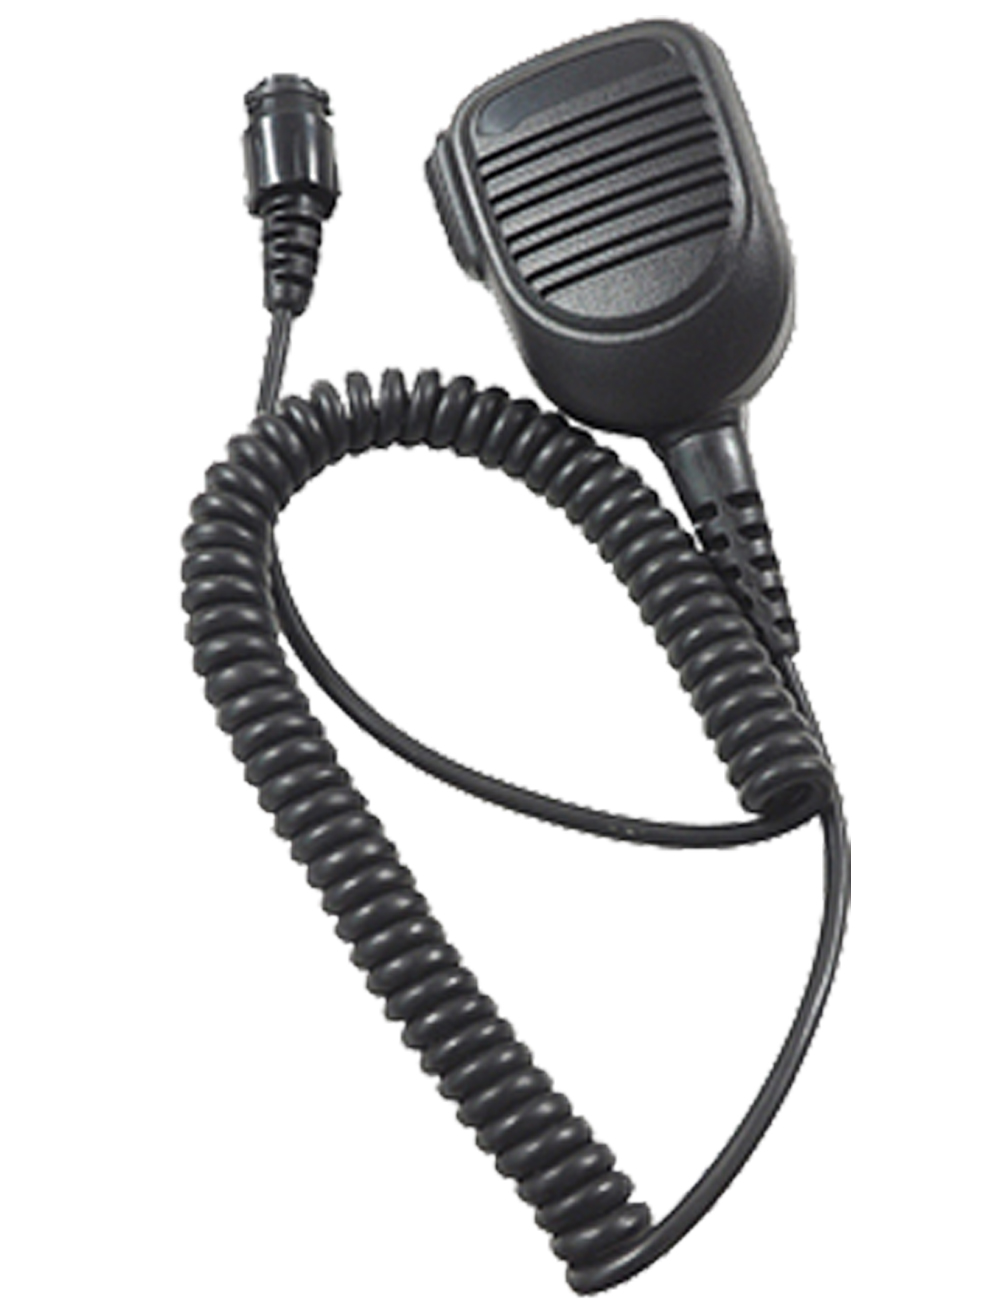 Compact Speaker Microphone CTG-RMN5052 for Motorola Radio